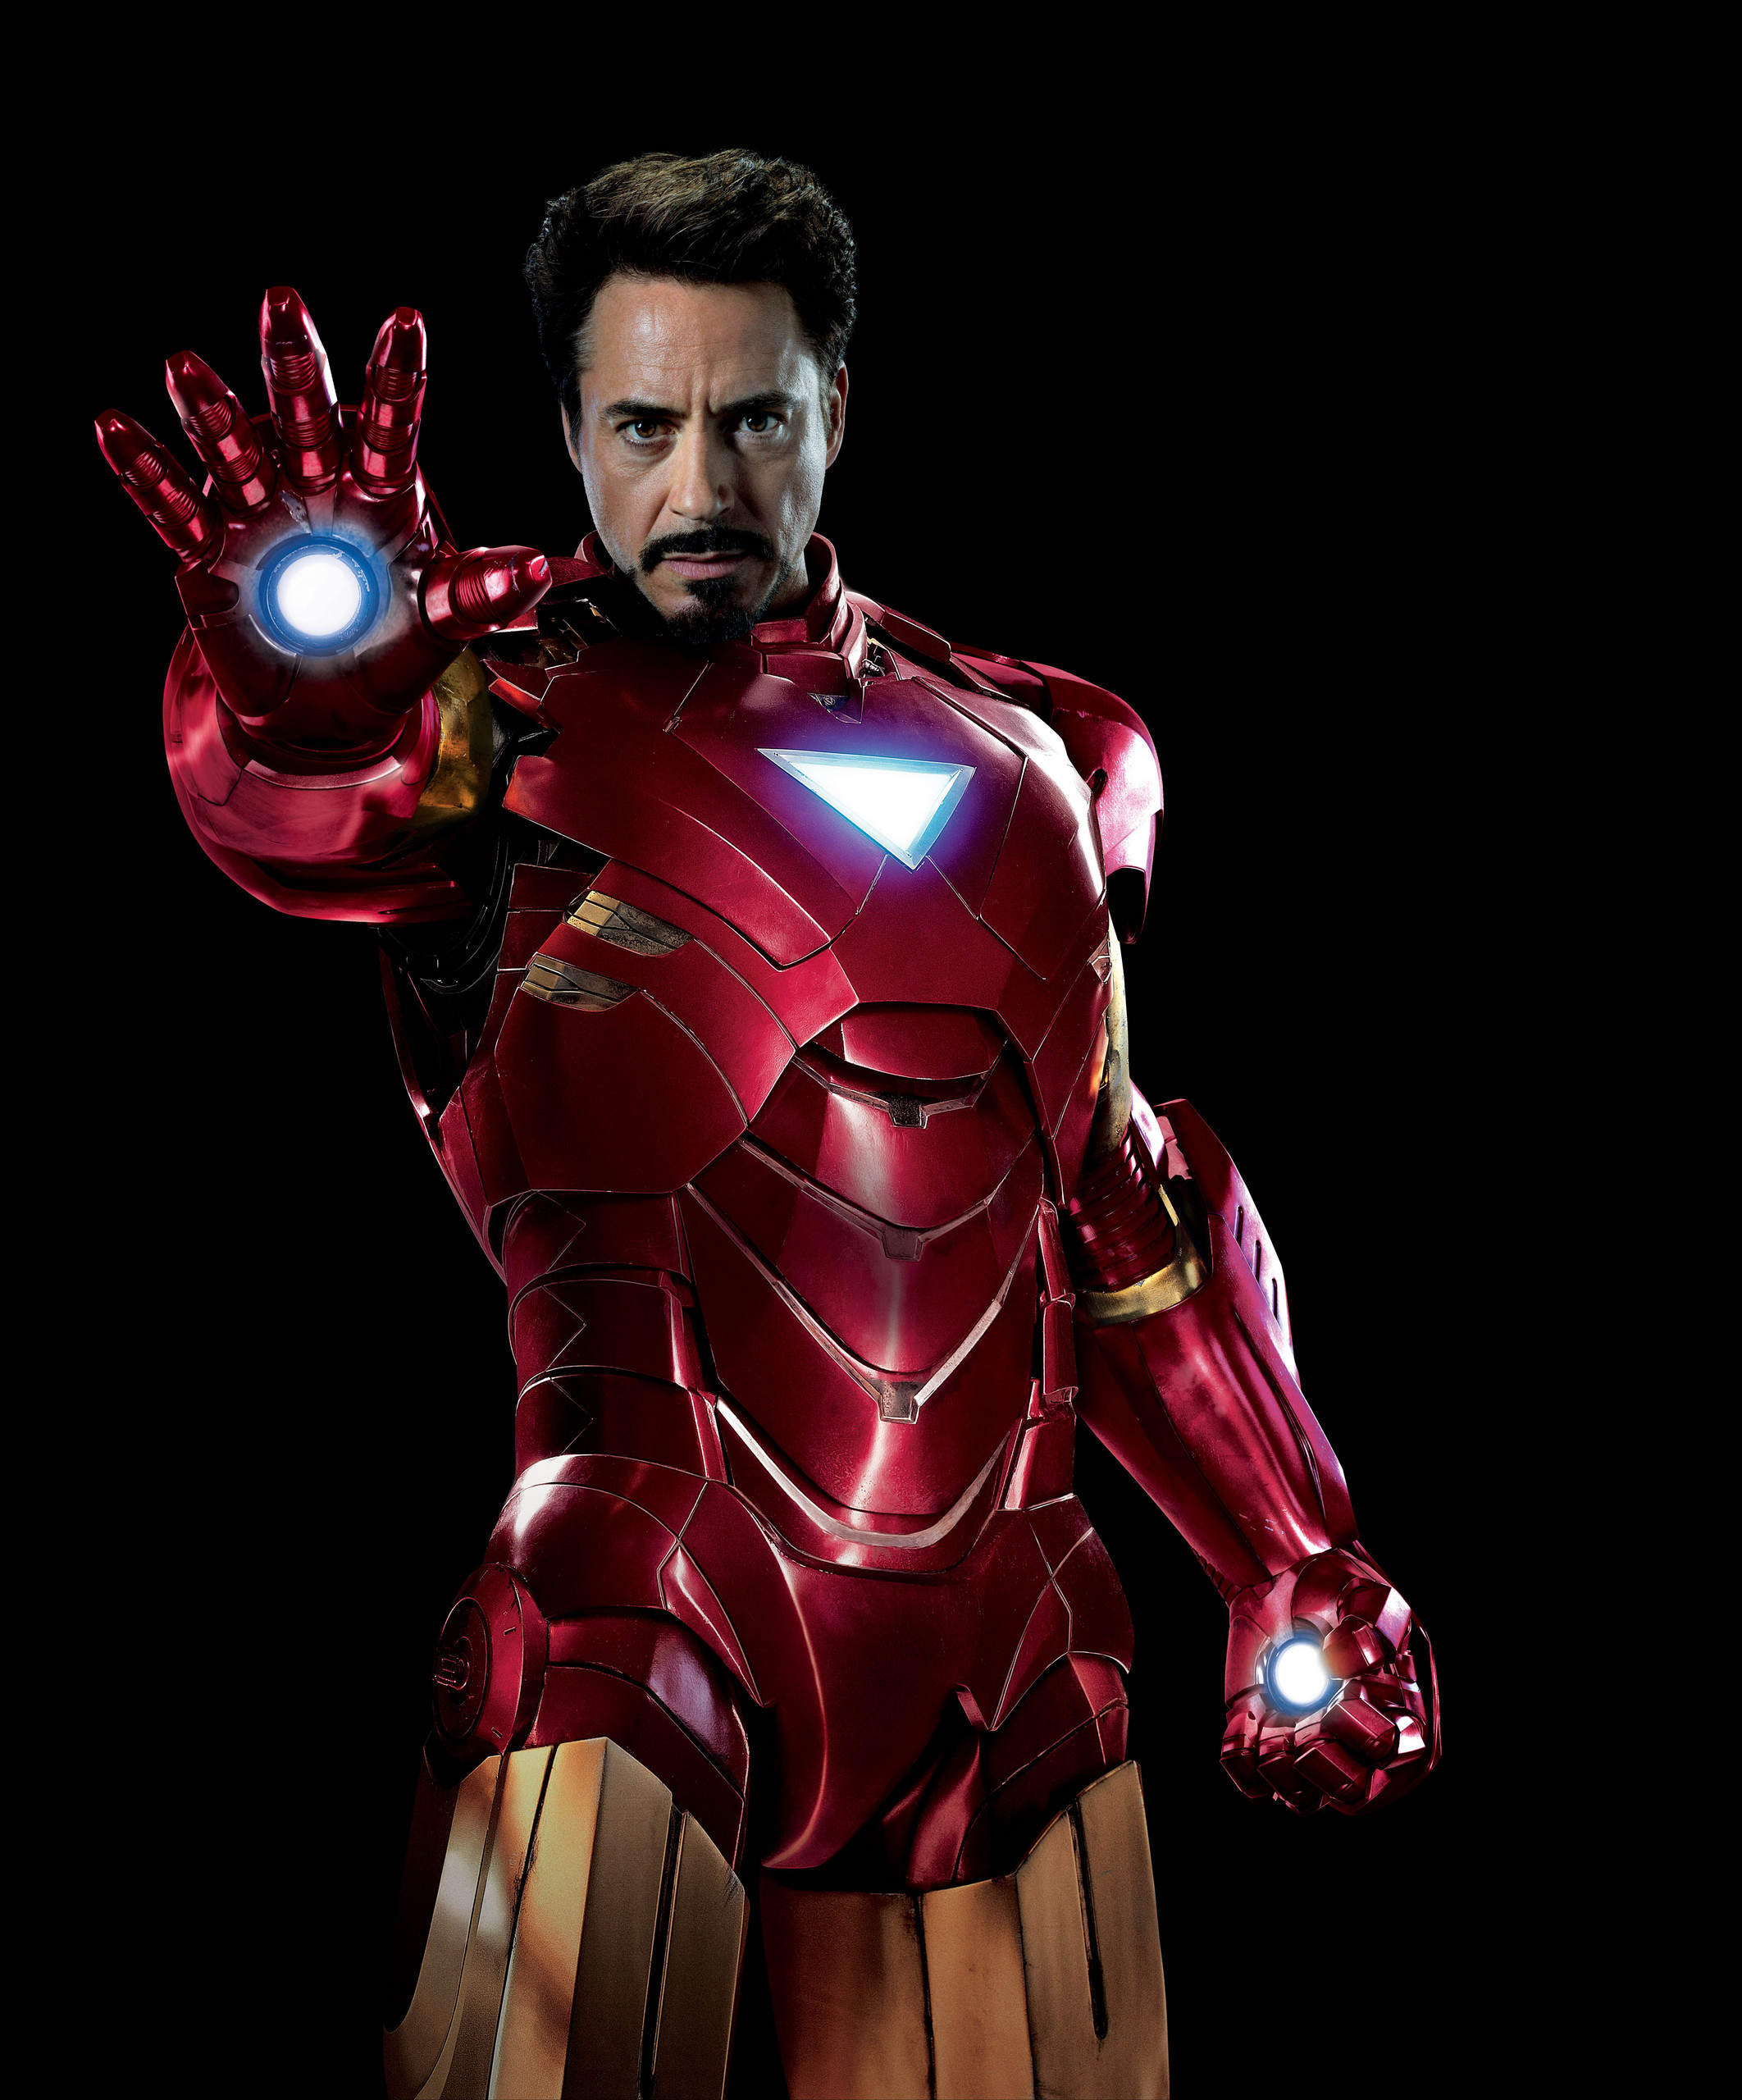 Iron Man / Tony Stark